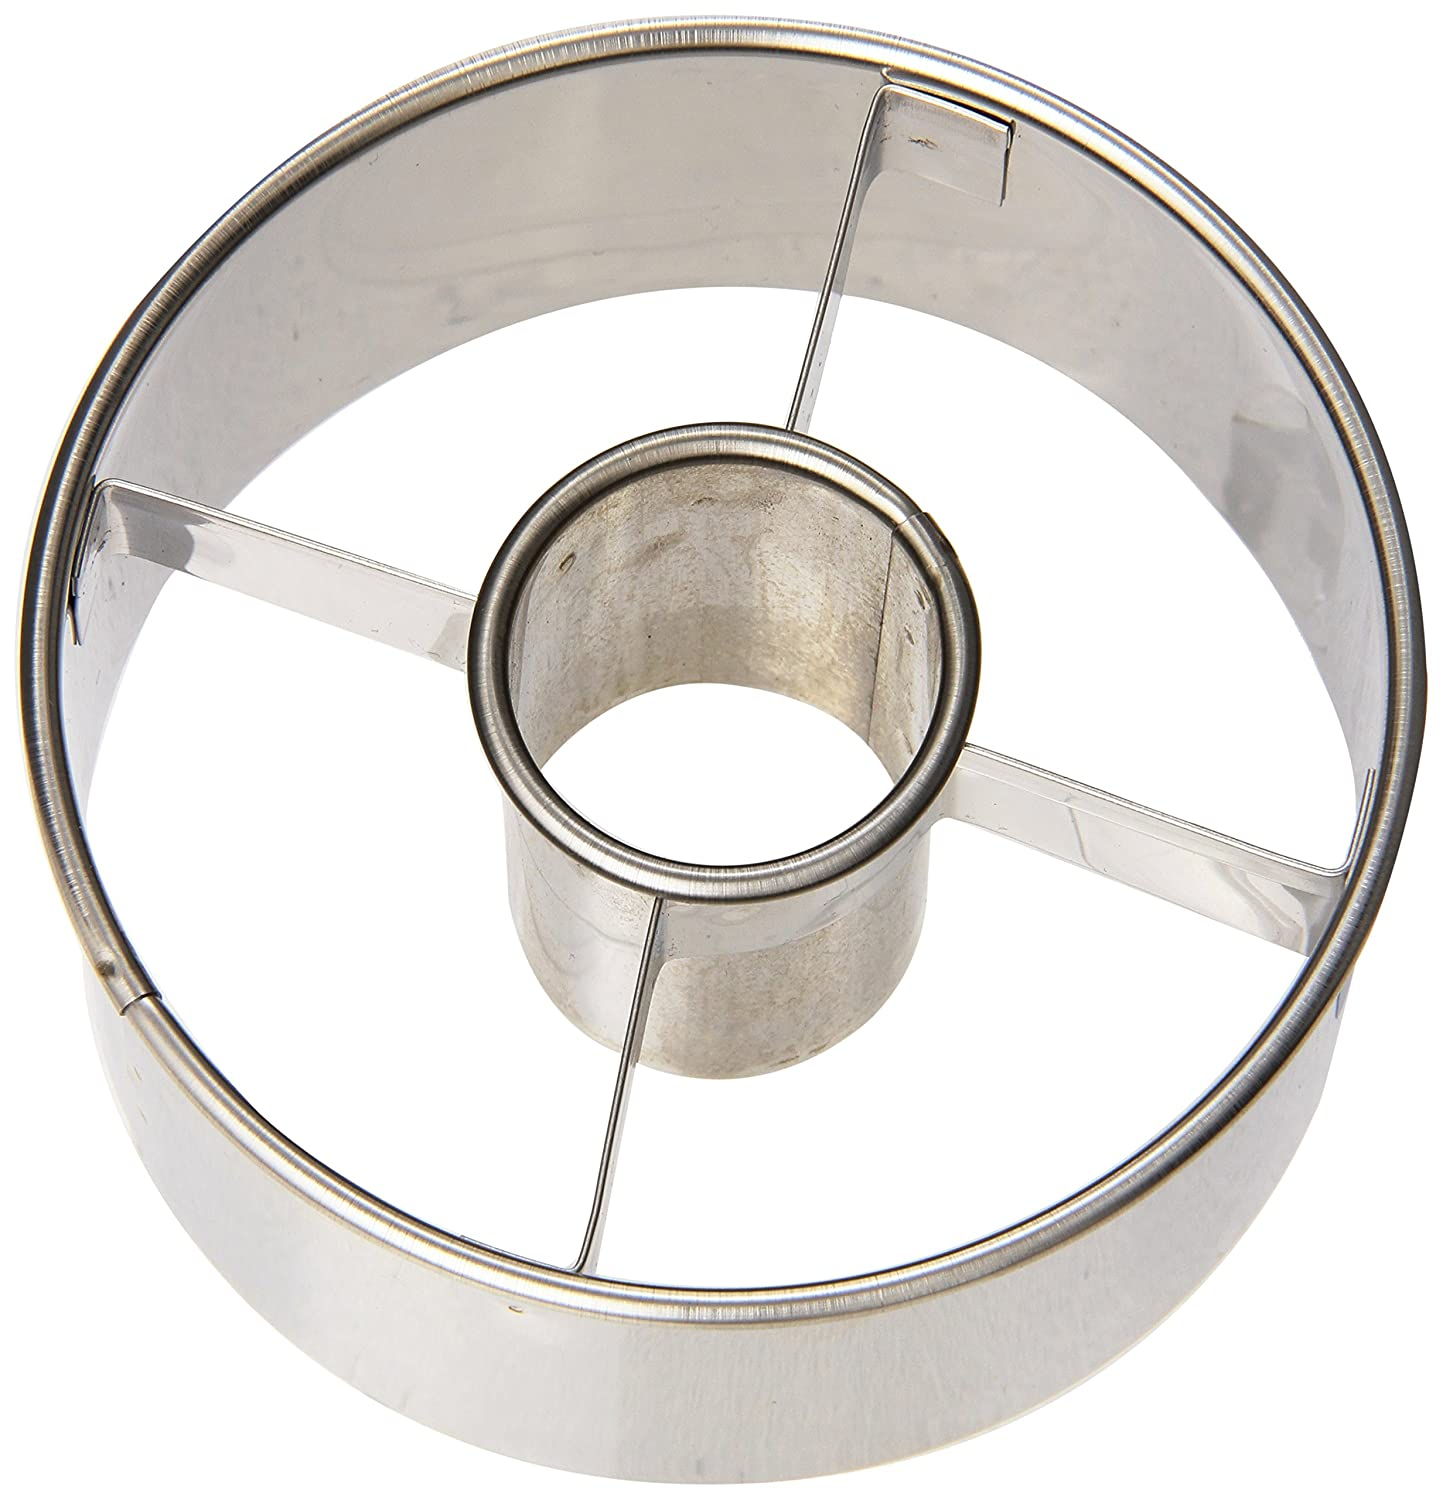 Ateco 3-1/2-Inch Stainless Steel Doughnut Cutter Harold Import Company 14423